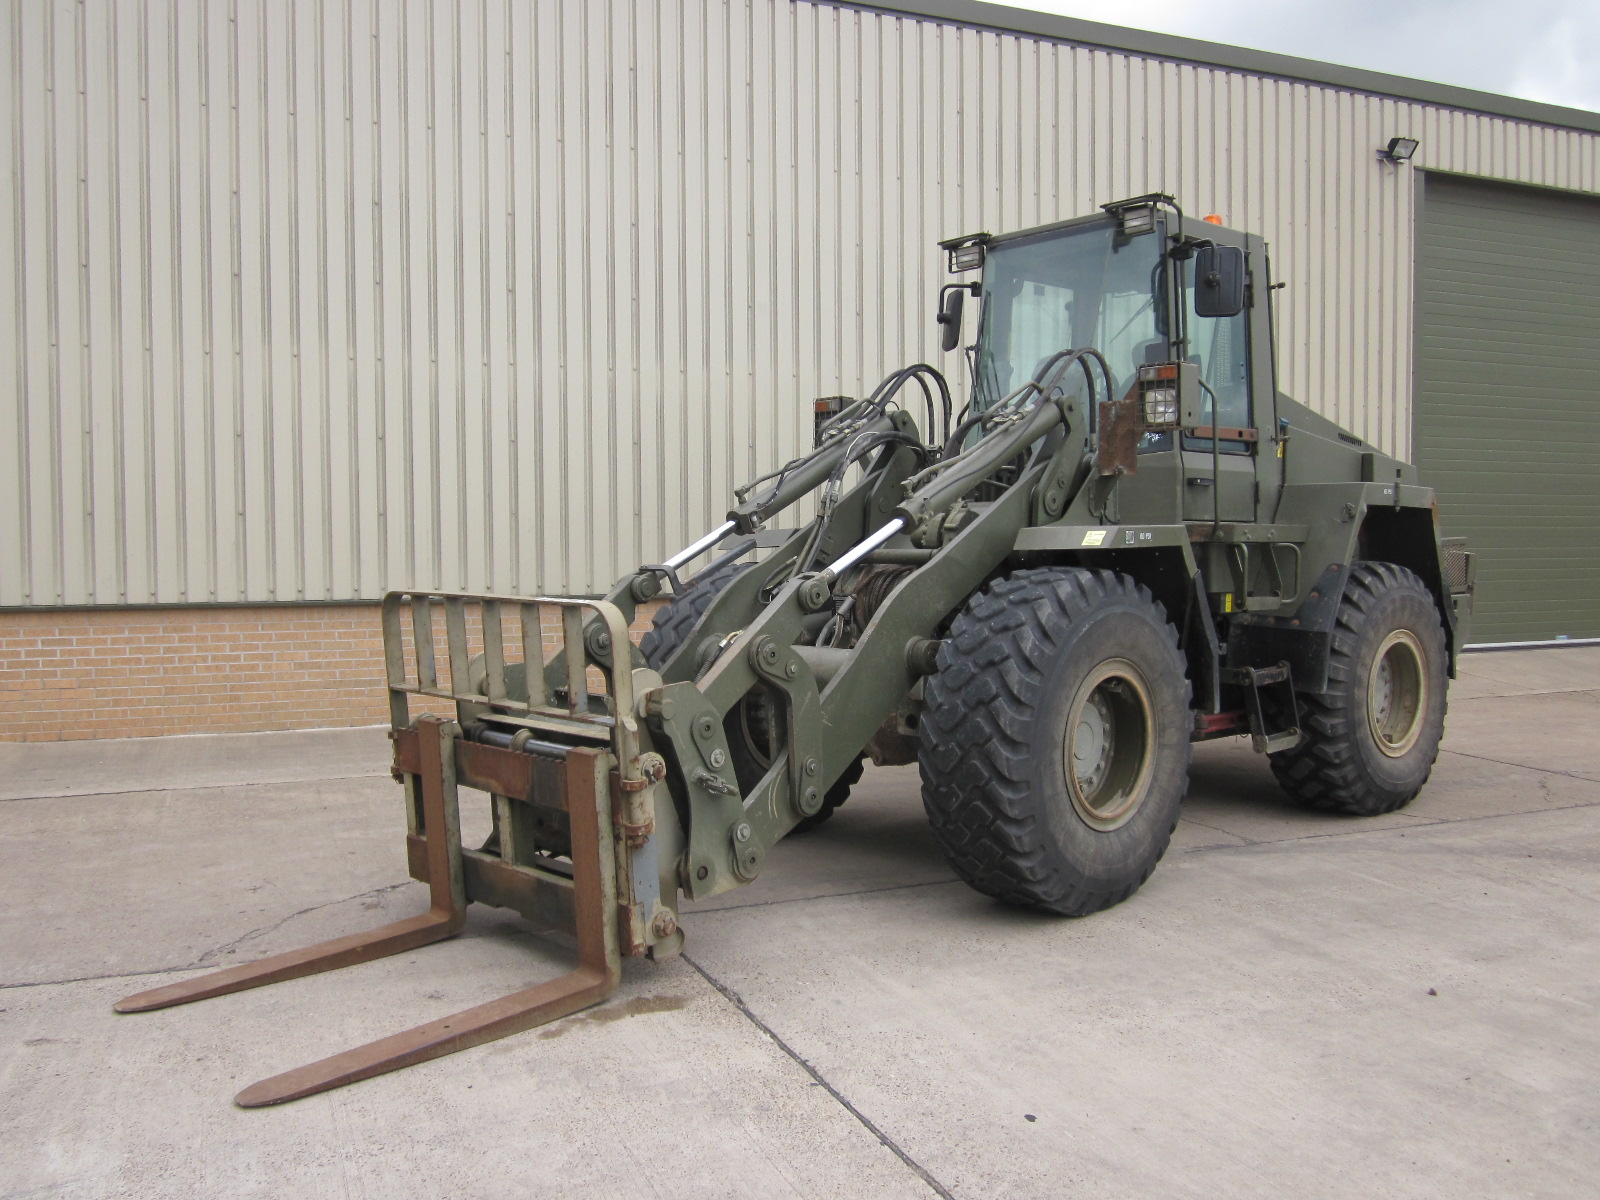 Case 721 CXT Forklift | Military Land Rovers 90, 110,130, Range Rovers, Mercedes for Sale